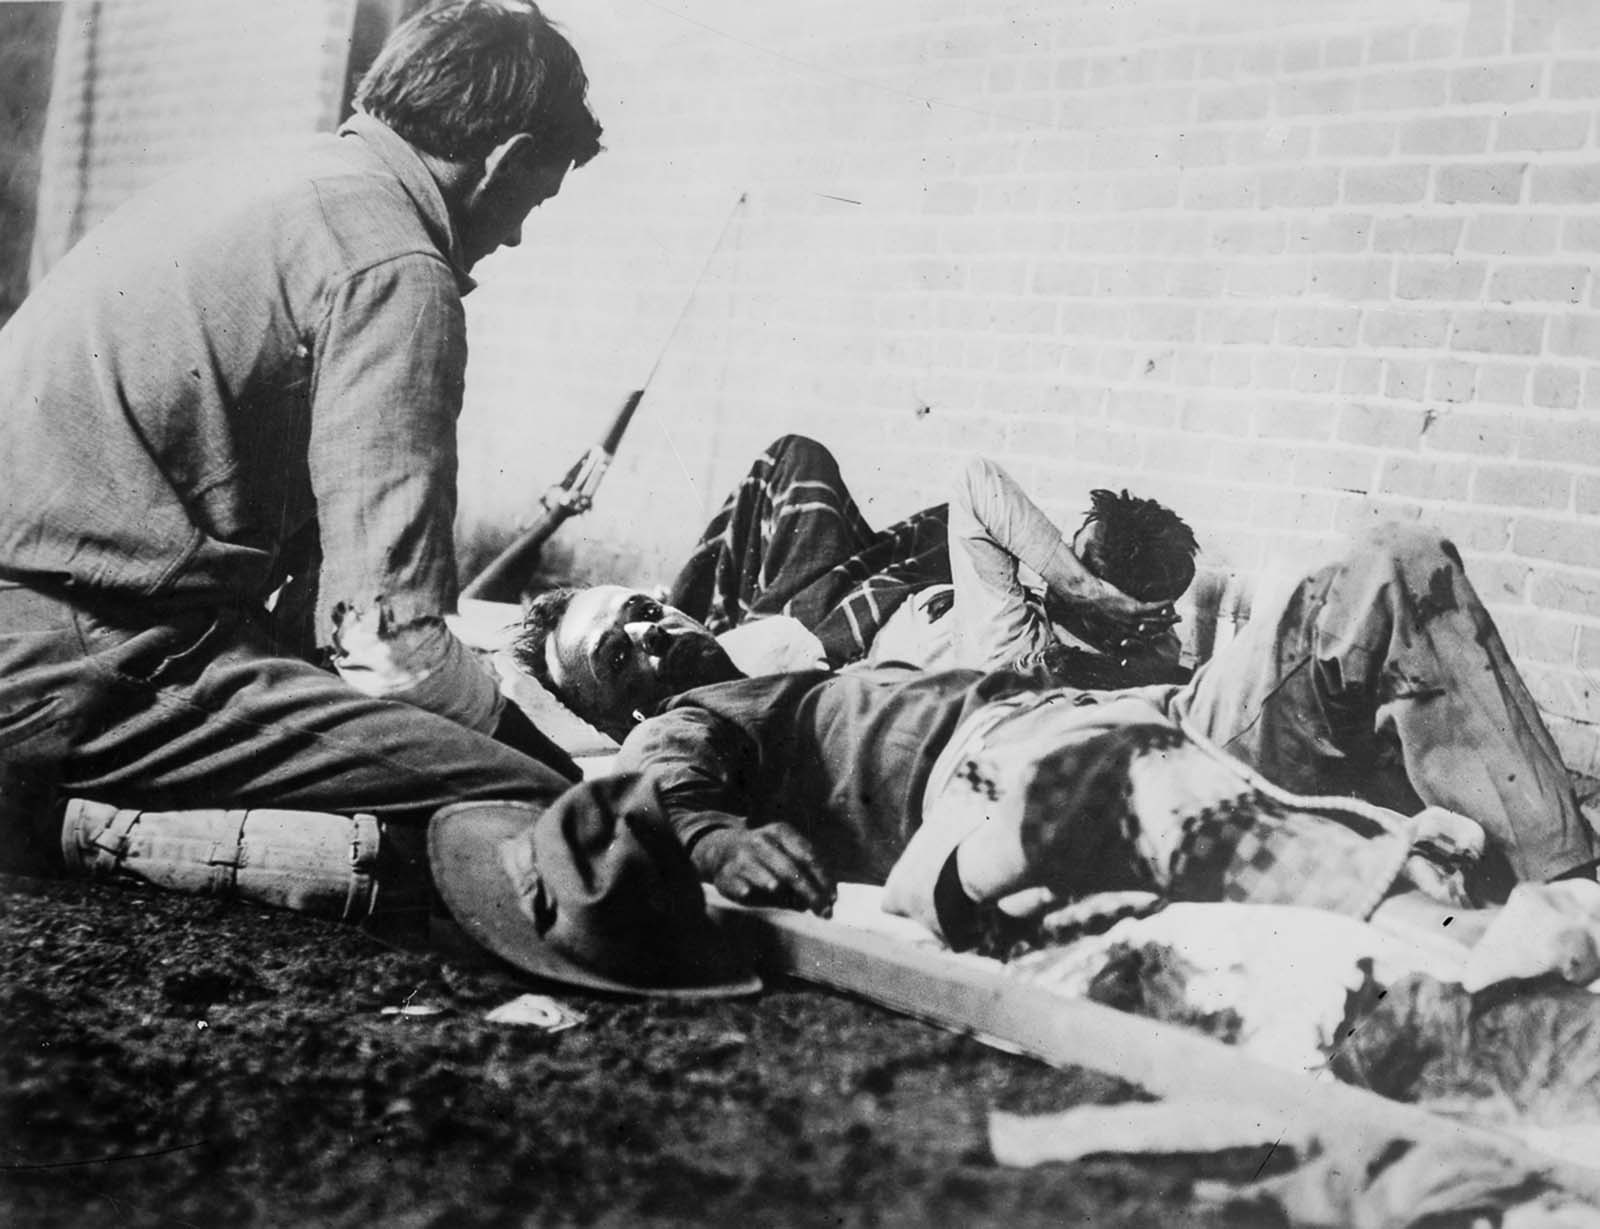 A soldier wounded in the battle for Ciudad Juárez receives treatment.